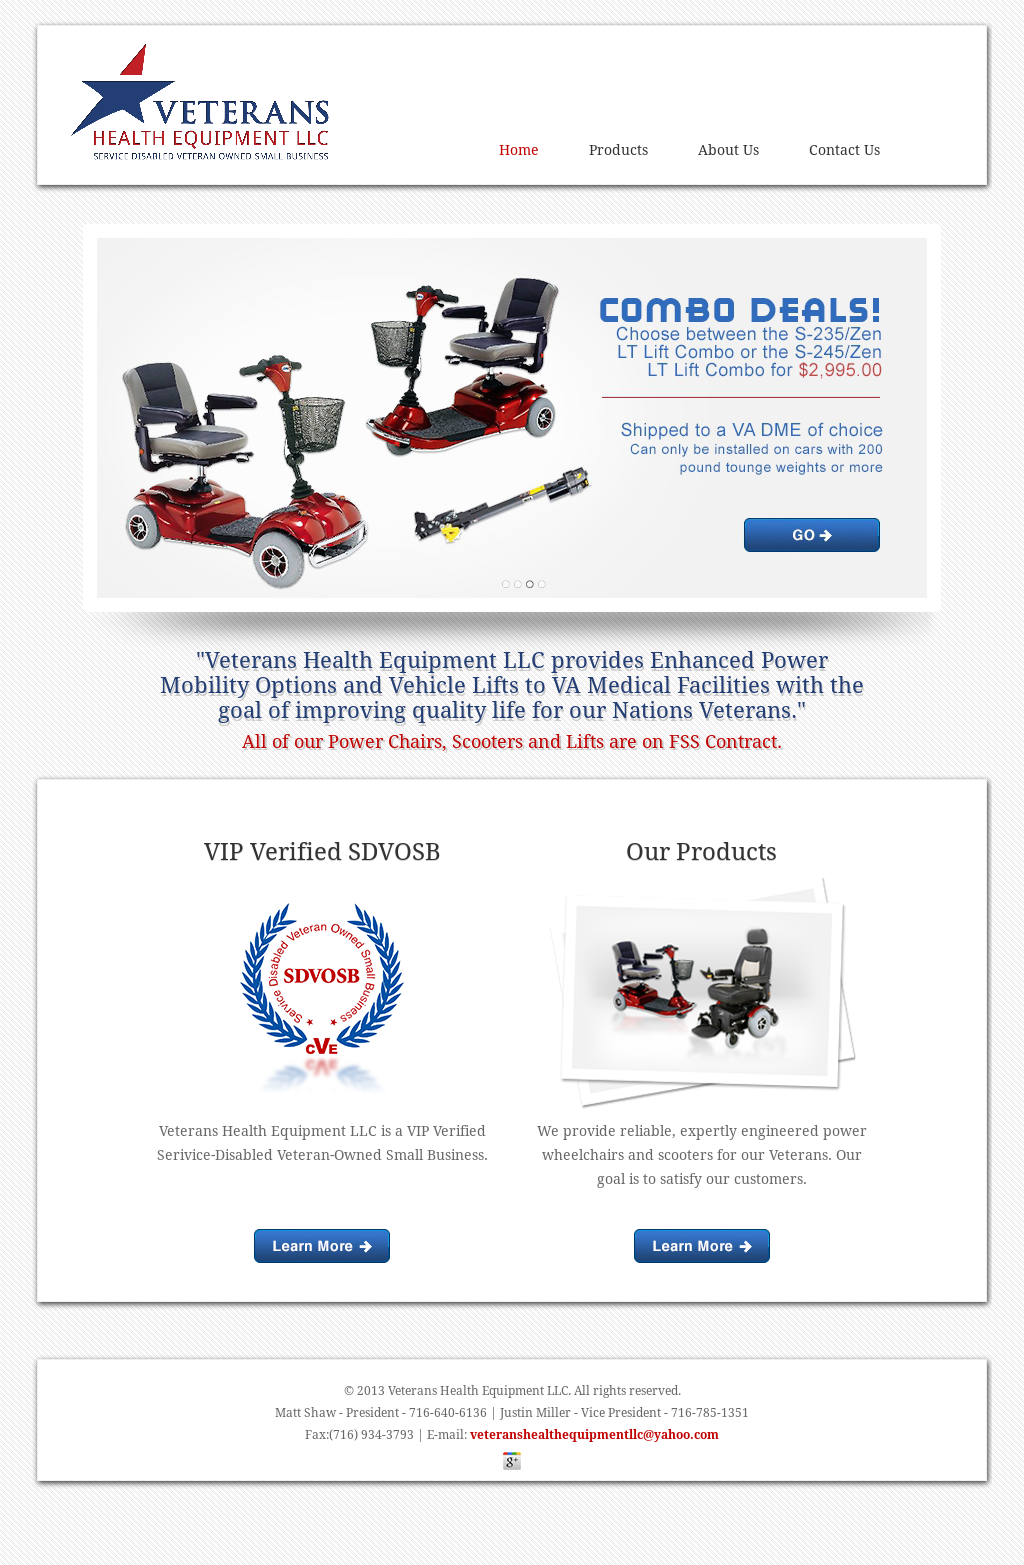 Veterans Health Equipment Competitors, Revenue and Employees - Owler